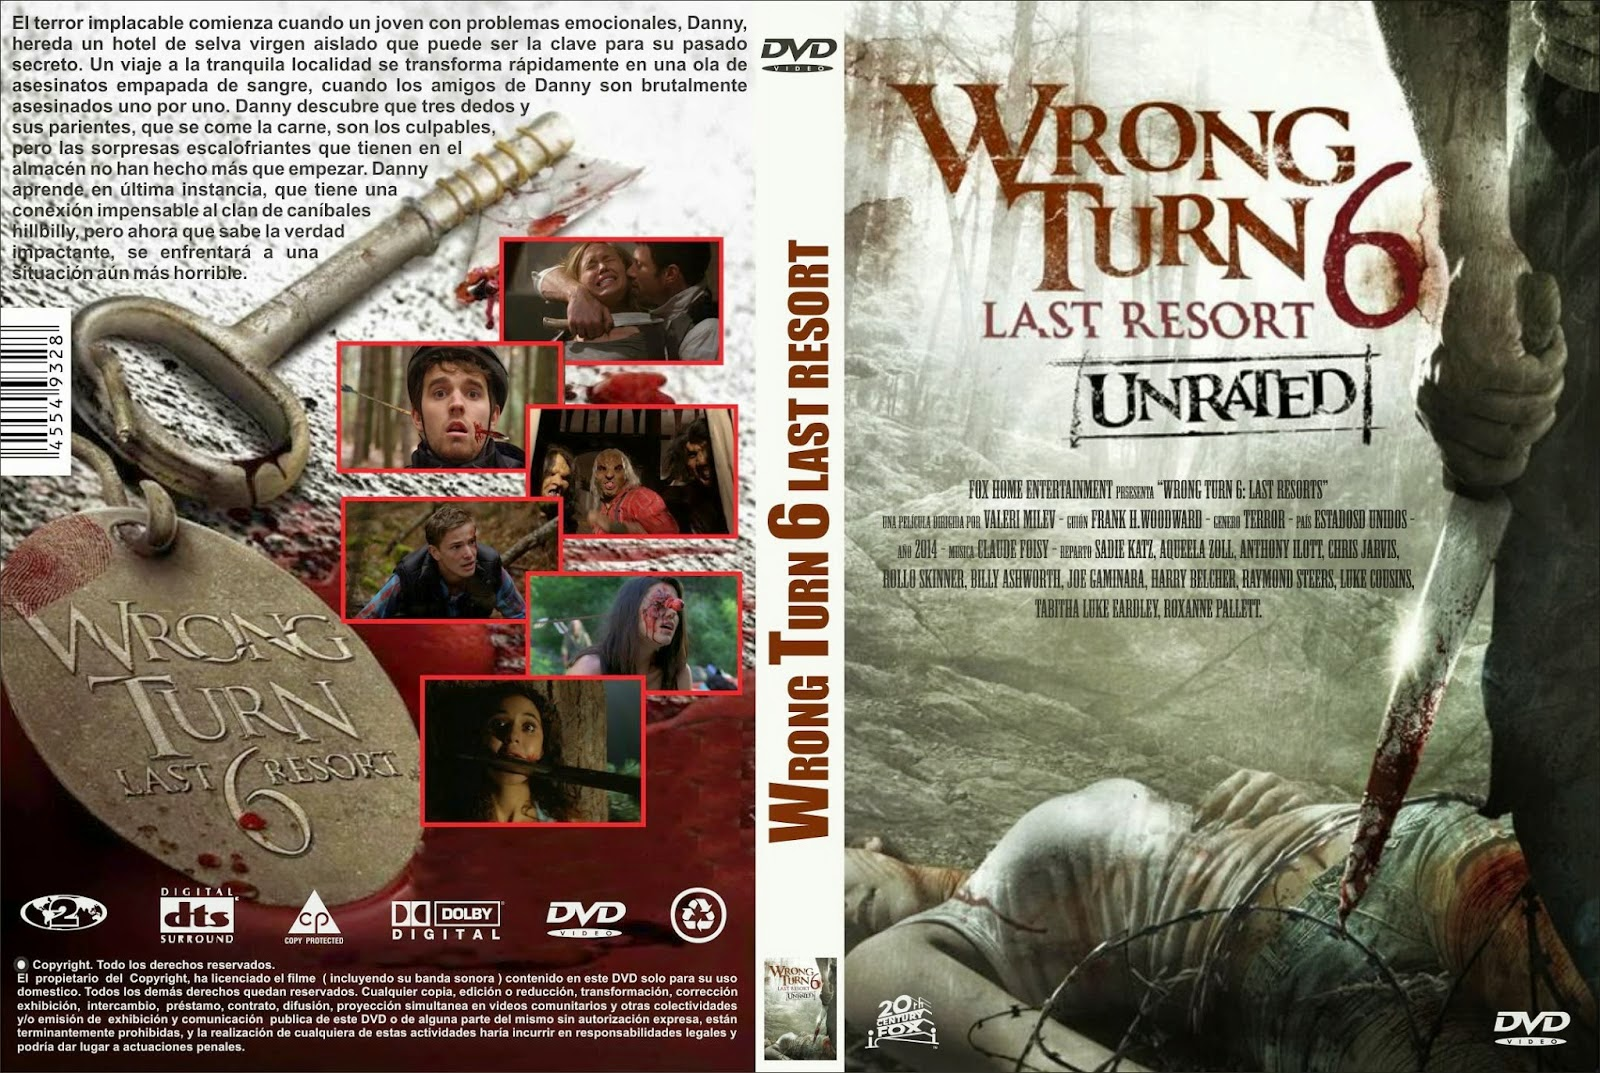 wrong turn 6 deutsch